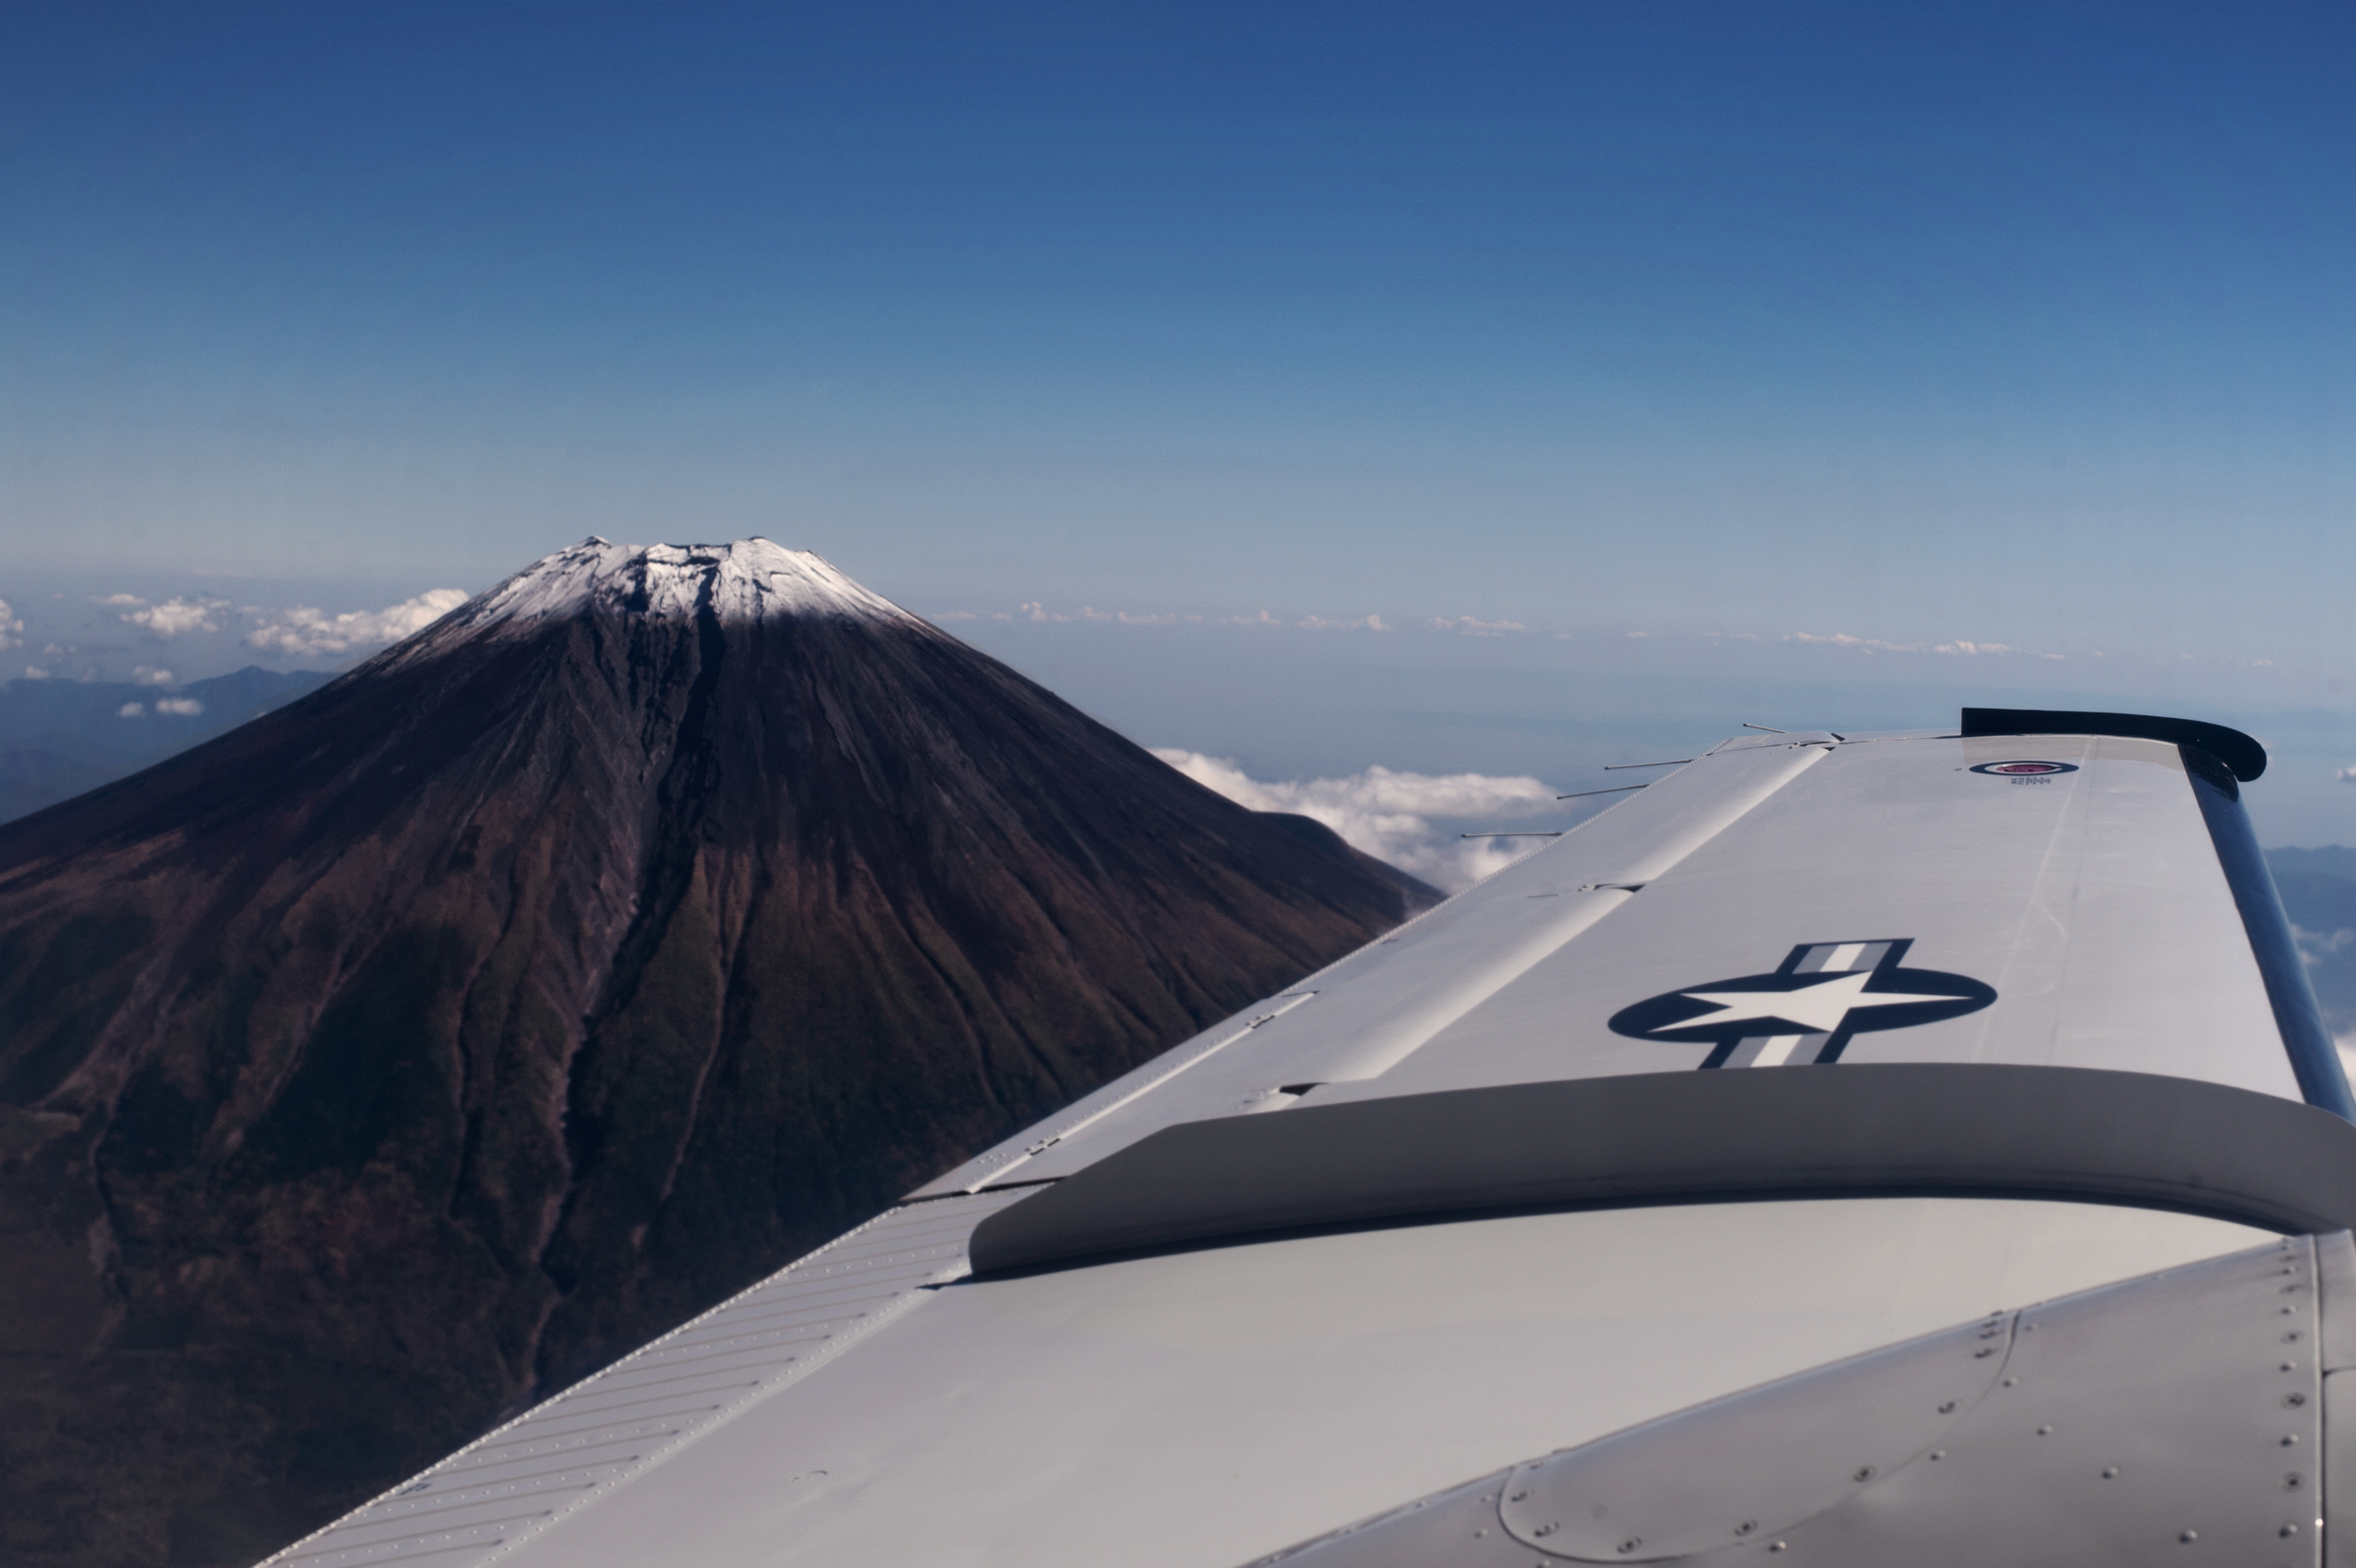 A C-12 Huron assigned to the 459th Airlift Squadron flies near Mt. Fuji, Japan, during a training mission, Oct. 13, 2015. The 459th utilizes the C-12H to maintain a forward presence in the Indo-Asia Pacific region and to provide support for distinguished visitors, as well as other priority passengers and cargo, on travel vital to the national security interest of the United States. (U.S. Air Force photo by Airman 1st Class Delano Scott/Released)